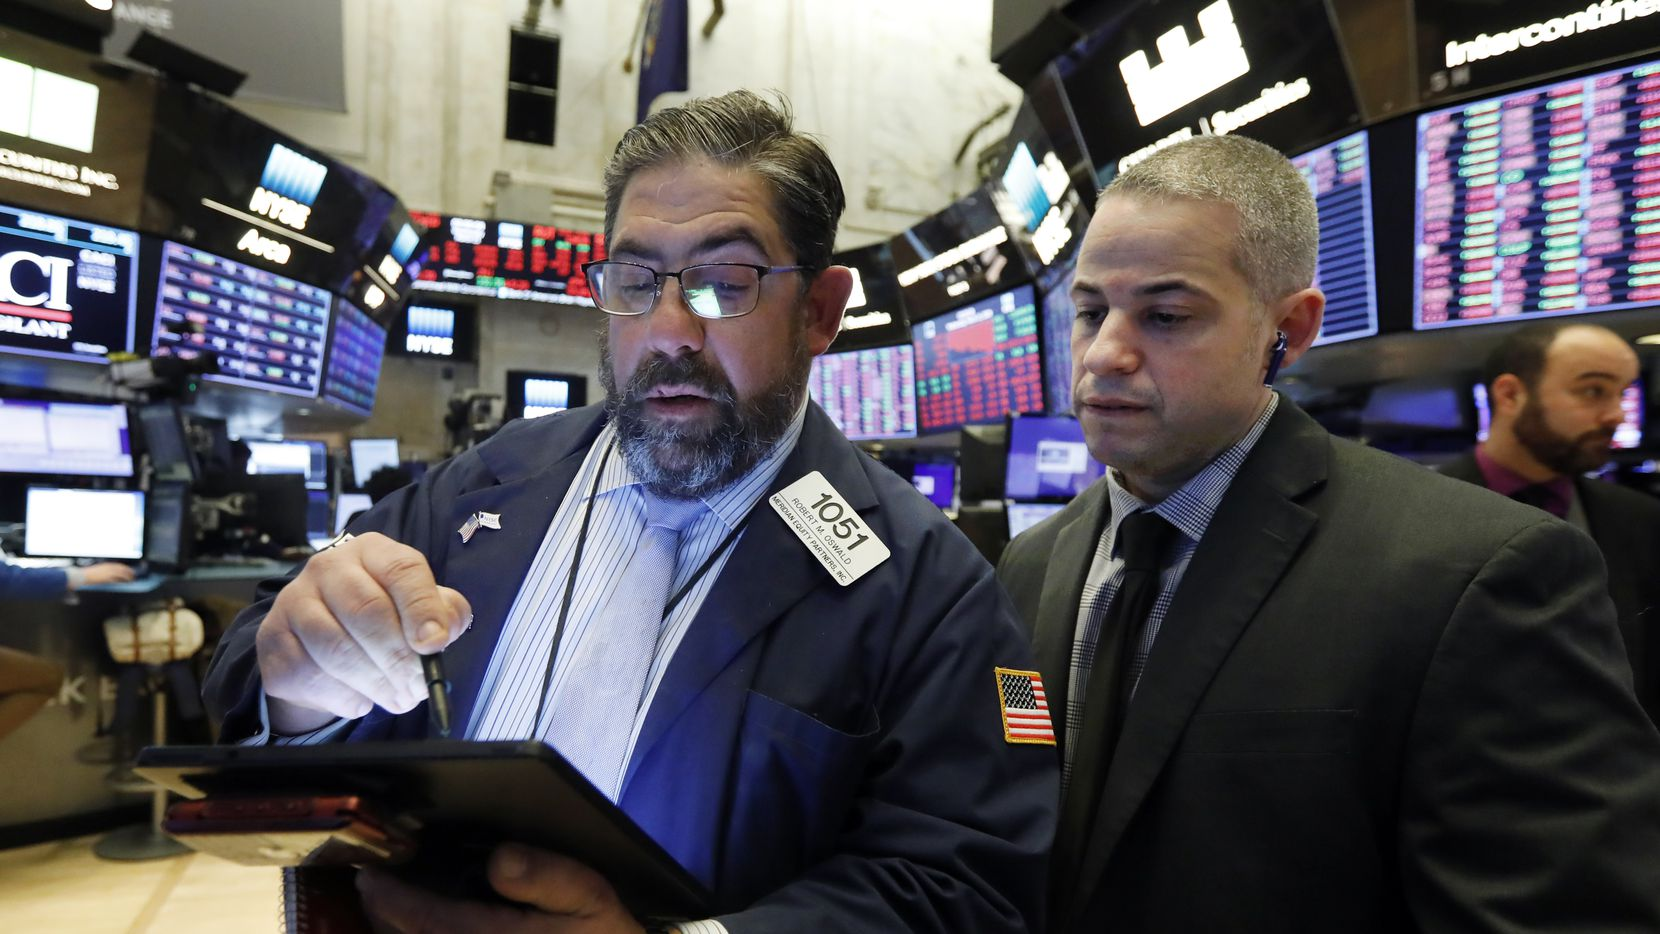 Director of trading floor Ooperations Fernando Munoz, right, works with trader Robert Oswald on the floor of the New York Stock Exchange on Wednesday.